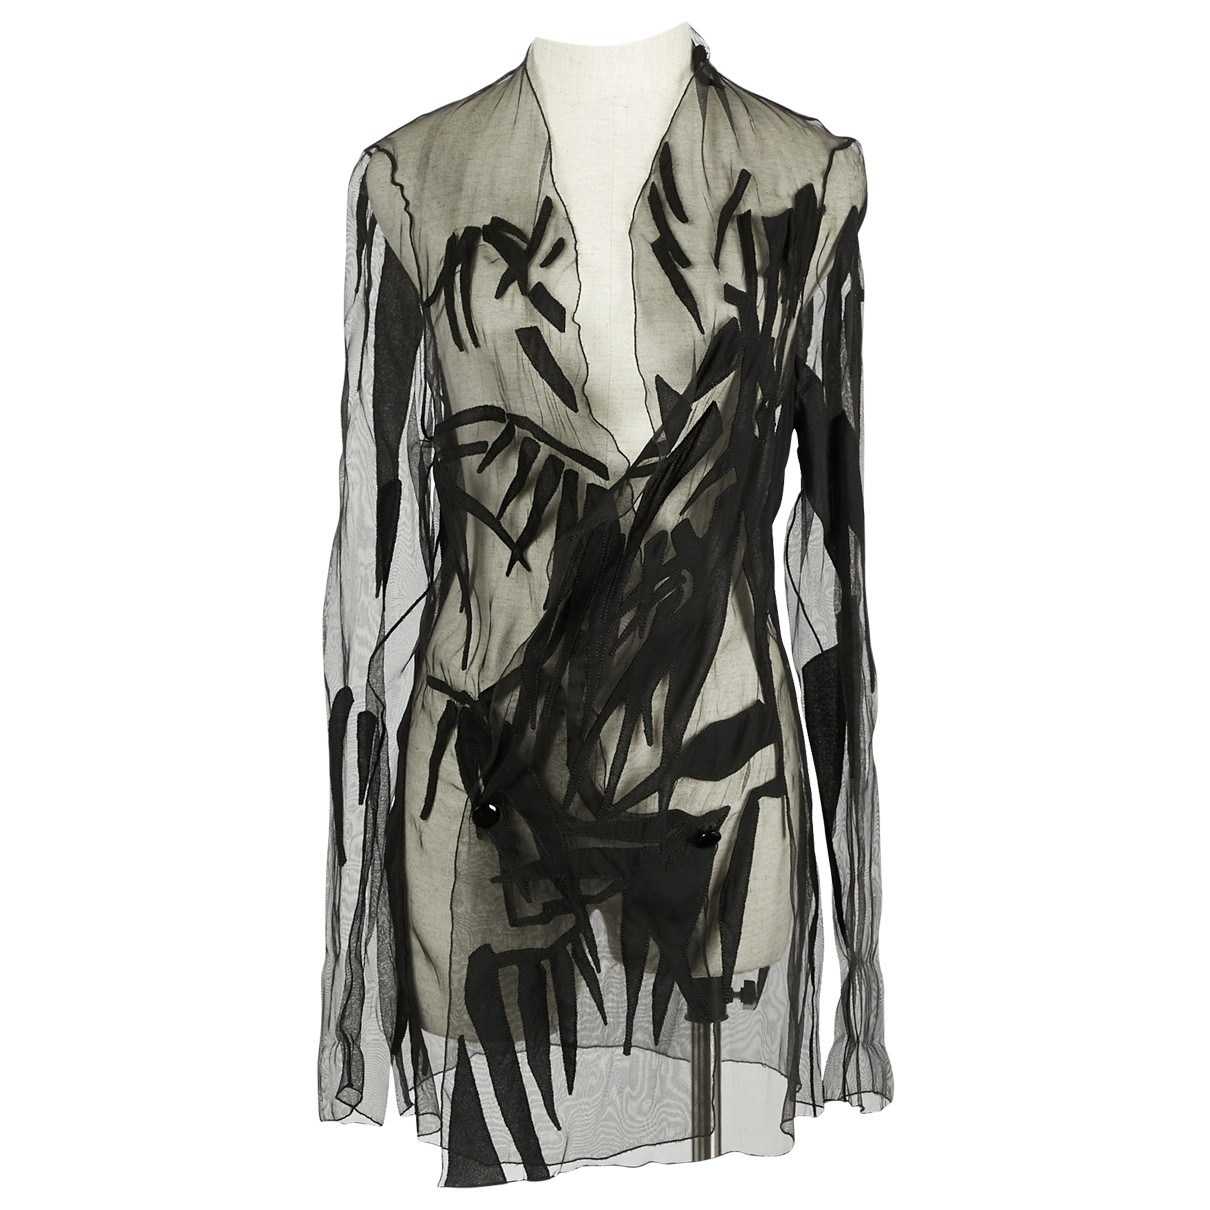 Anthony Vaccarello \N Black Silk jacket for Women 40 IT